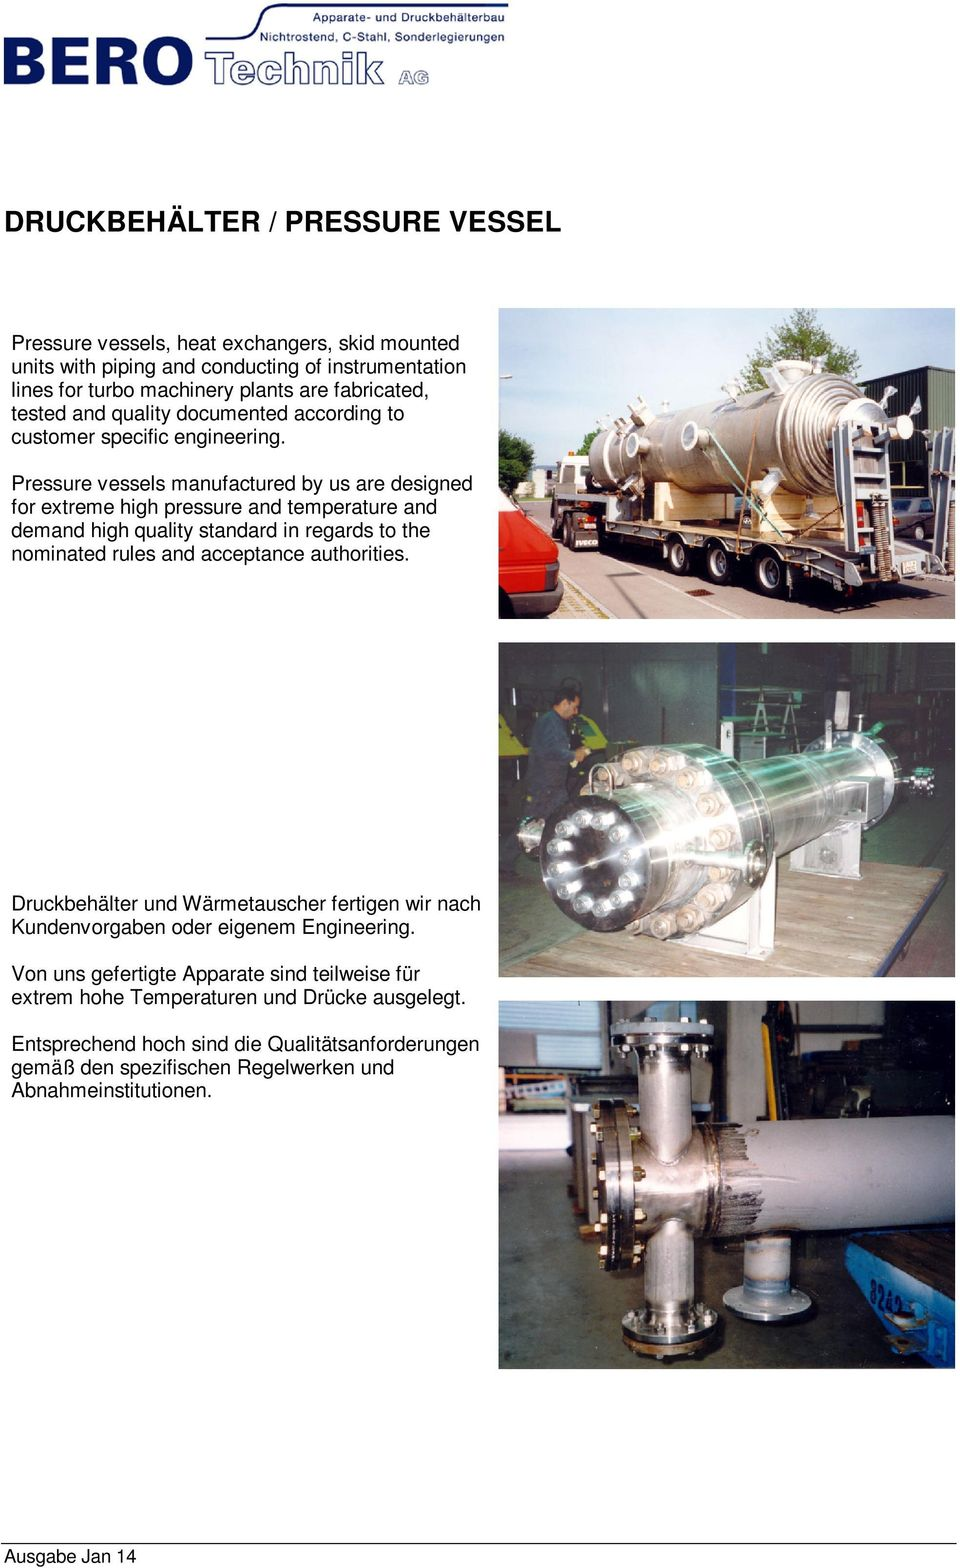 Pressure vessels manufactured by us are designed for extreme high pressure and temperature and demand high quality standard in regards to the nominated rules and acceptance